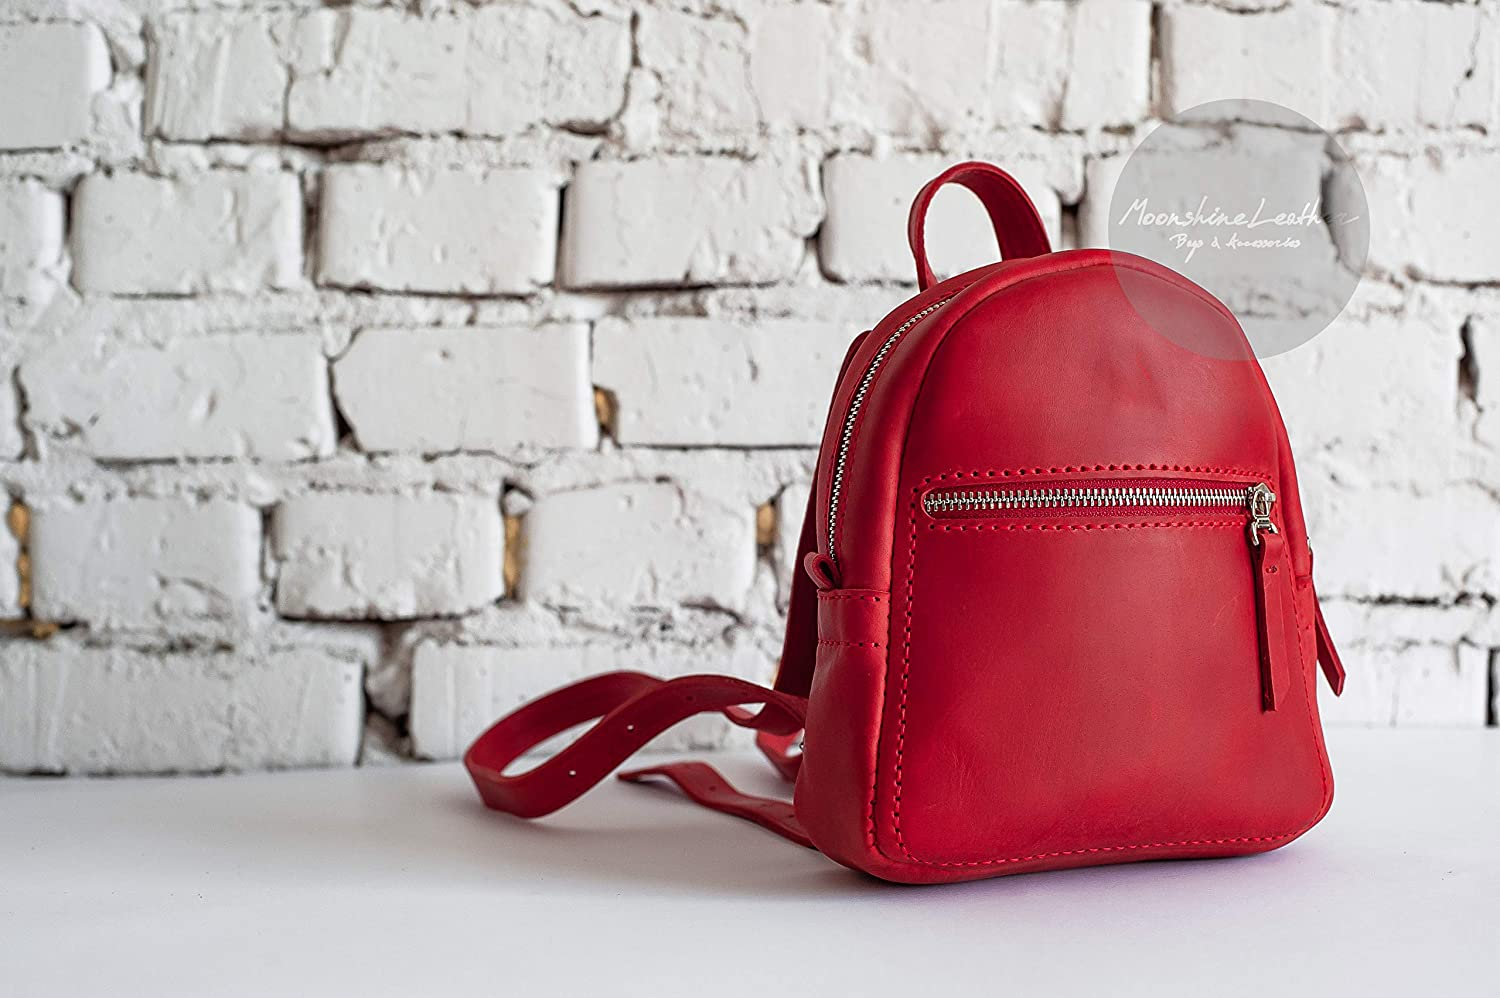 df10f3a3f251 RED backpack Mini leather backpack Handmade backpack Vintage backpack  Womens backpack Leather rucksack Womens leather bag Small backpack Backpack  purse